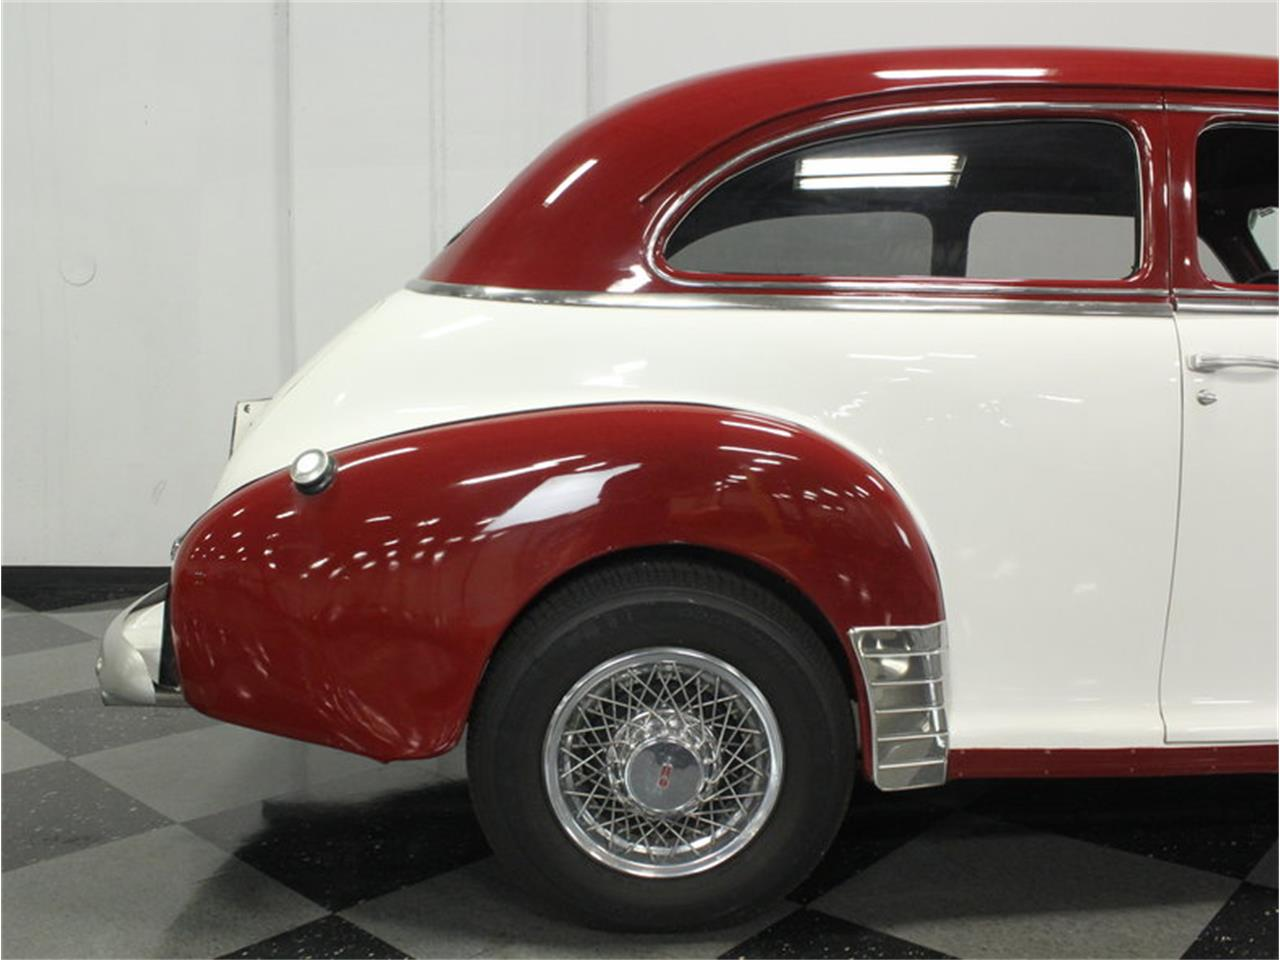 Large Picture of 1947 Chevrolet Fleetmaster located in Ft Worth Texas - $16,995.00 Offered by Streetside Classics - Dallas / Fort Worth - IJNK